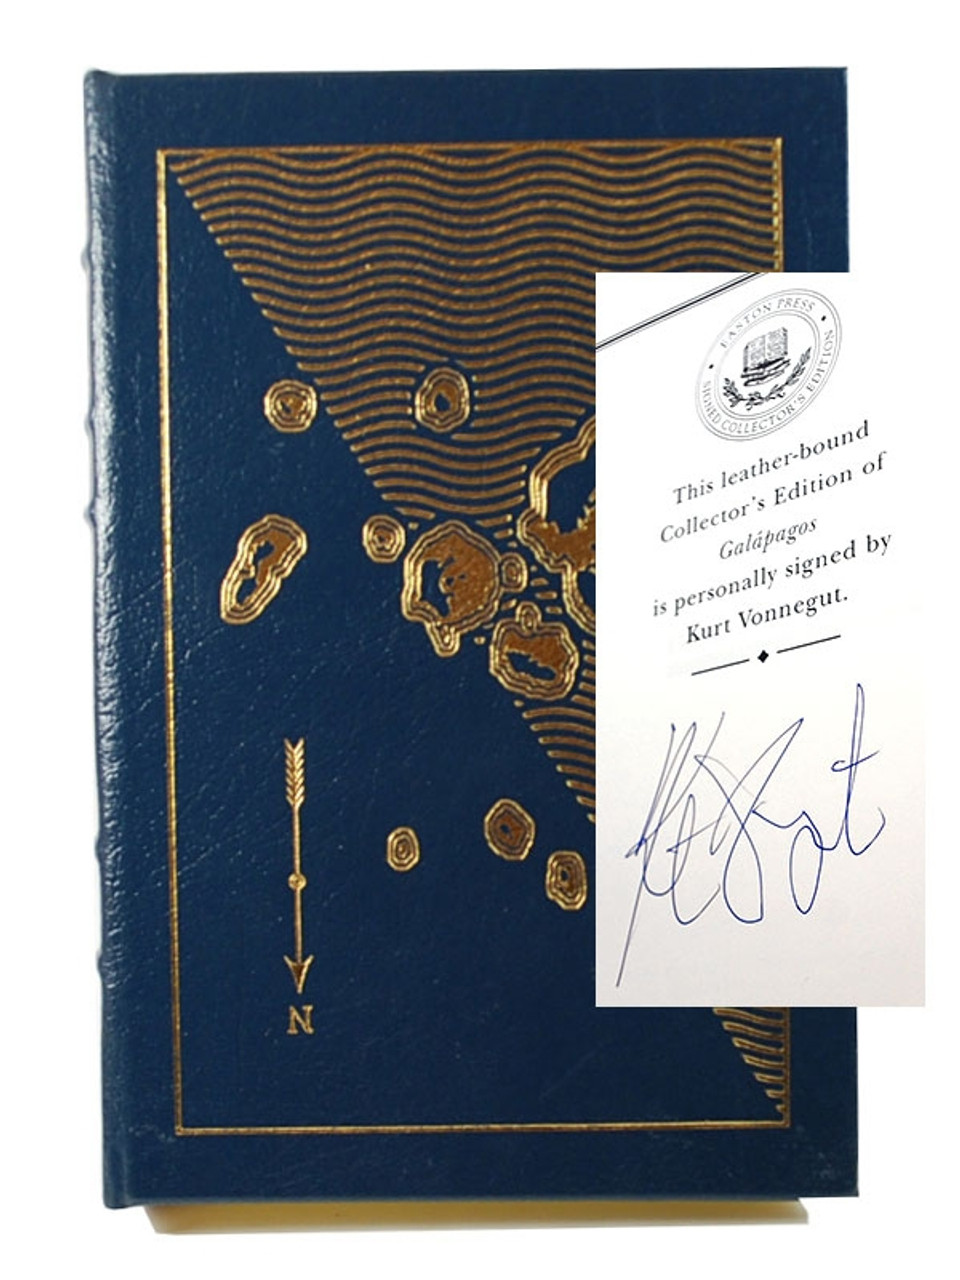 Signed by Vonnegut Galapagos Leather Bound Easton Press